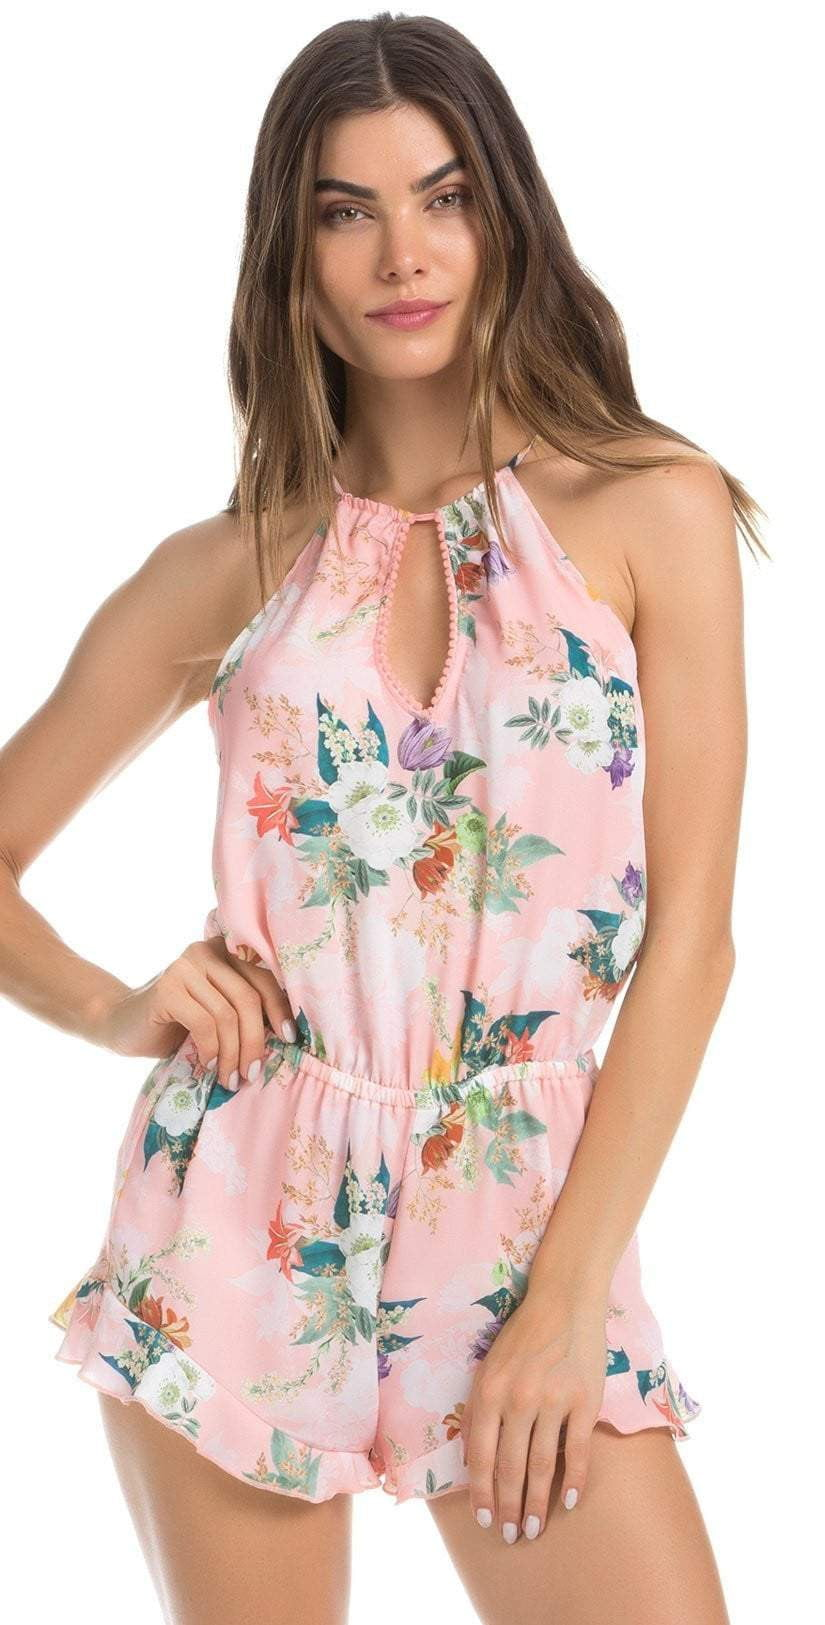 4bea669f1af Isabella Rose Blossoms Romper in Pink Floral 4934984-MUL. Write a review